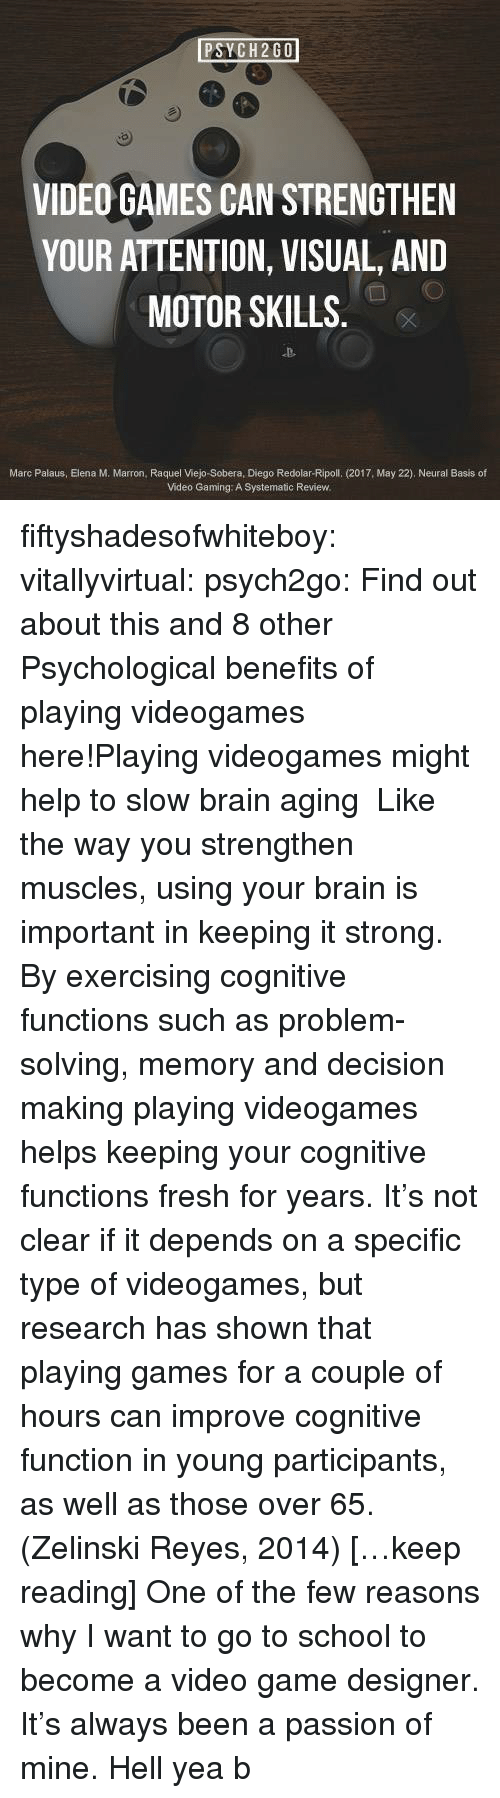 systematic: PSYCH2GO  VIDEO GAMES CAN STRENGTHEN  YOUR ATTENTION, VISUAL, AND  MOTOR SKILLS  D-  Marc Palaus, Elena M. Marron, Raquel Viejo-Sobera, Diego Redolar-Ripoll. (2017, May 22). Neural Basis of  Video Gaming: A Systematic Review. fiftyshadesofwhiteboy:  vitallyvirtual:  psych2go:  Find out about this and 8 other Psychological benefits of playing videogames here!Playing videogames might help to slow brain aging  Like the way you strengthen muscles, using your brain is important in keeping it strong. By exercising cognitive functions such as problem-solving, memory and decision making playing videogames helps keeping your cognitive functions fresh for years. It's not clear if it depends on a specific type of videogames, but research has shown that playing games for a couple of hours can improve cognitive function in young participants, as well as those over 65. (Zelinski  Reyes, 2014)[…keep reading]  One of the few reasons why I want to go to school to become a video game designer. It's always been a passion of mine.  Hell yea b